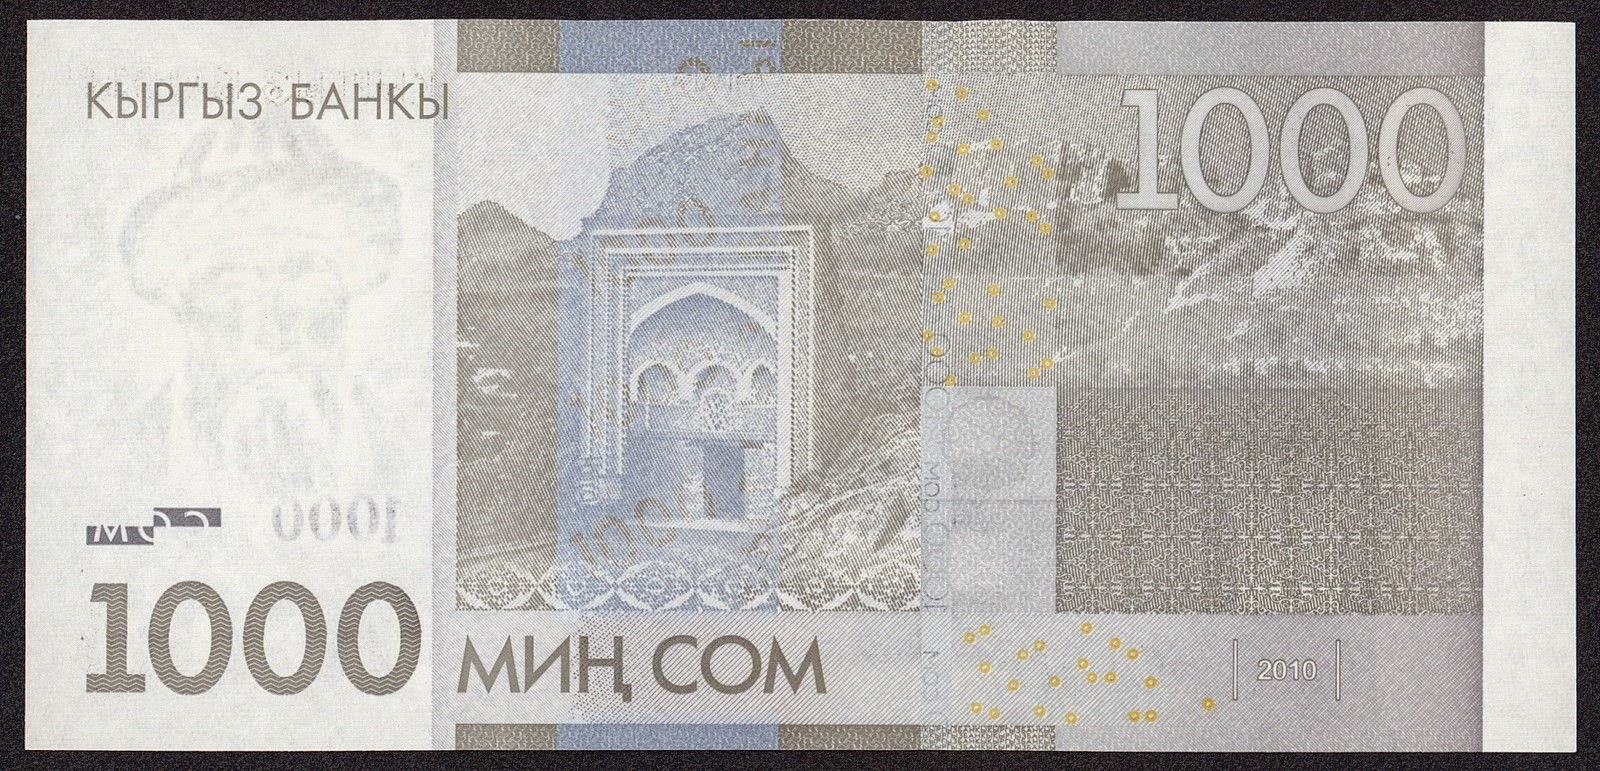 Kyrgyzstan currency 1000 Som banknote